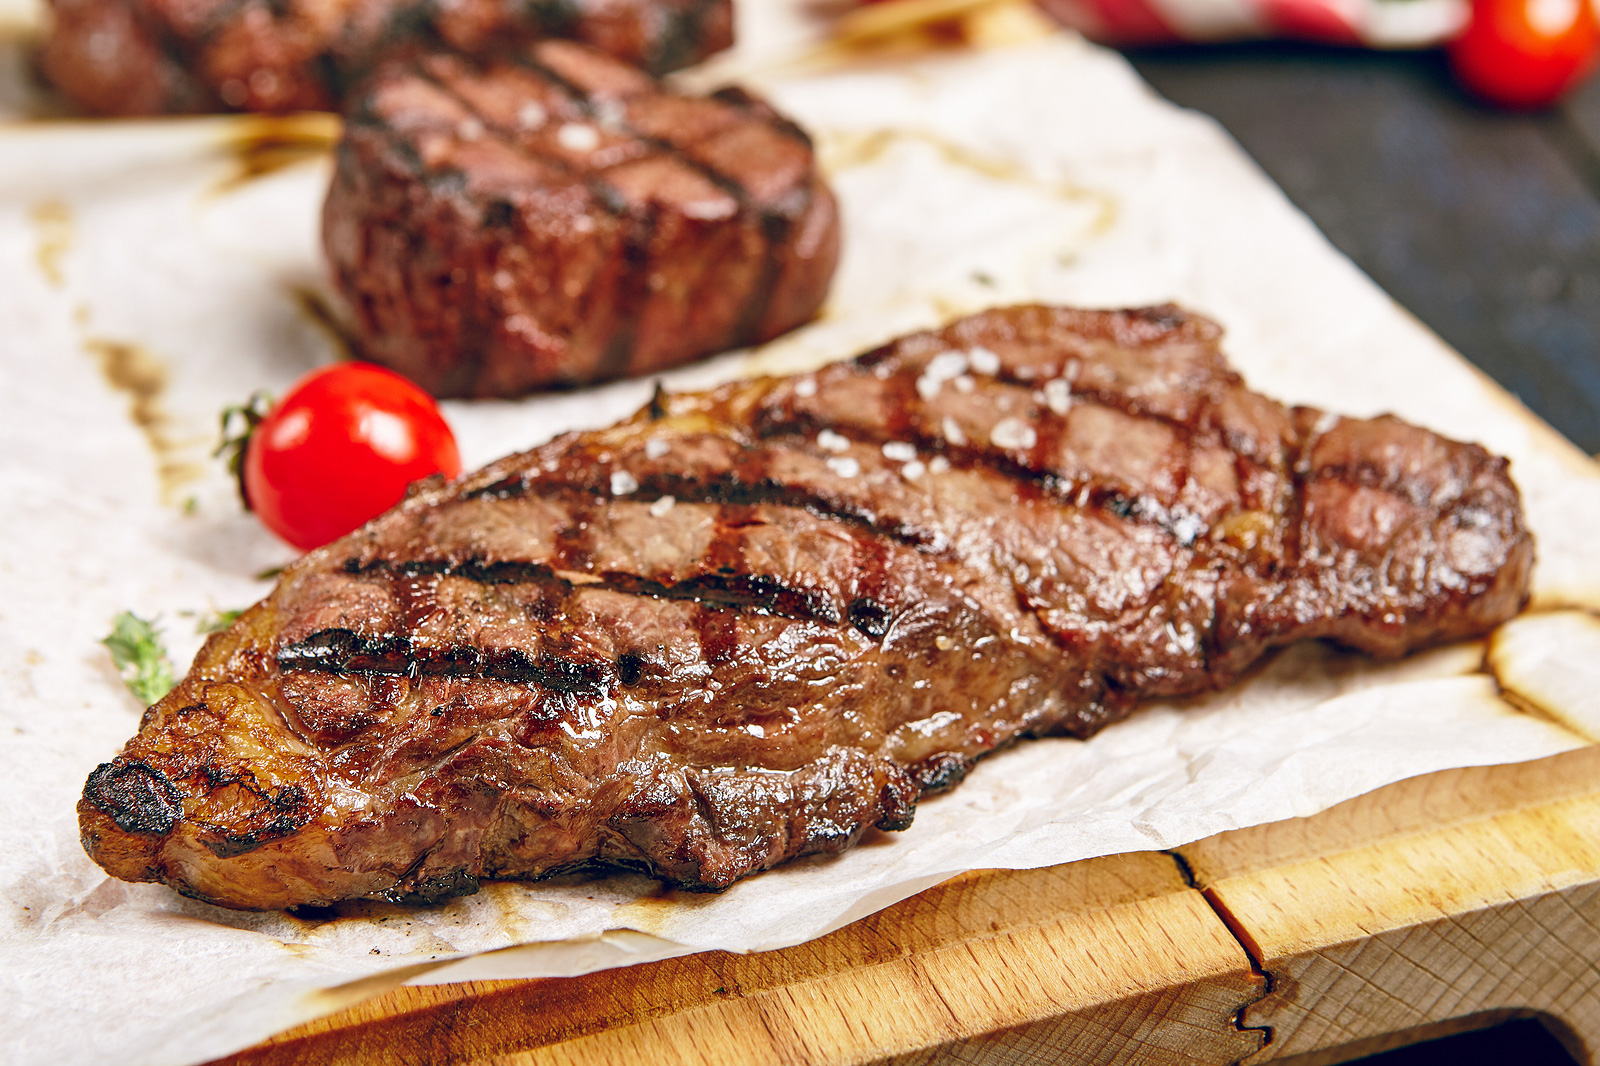 seafood fresh meat market steak delicious meats canned